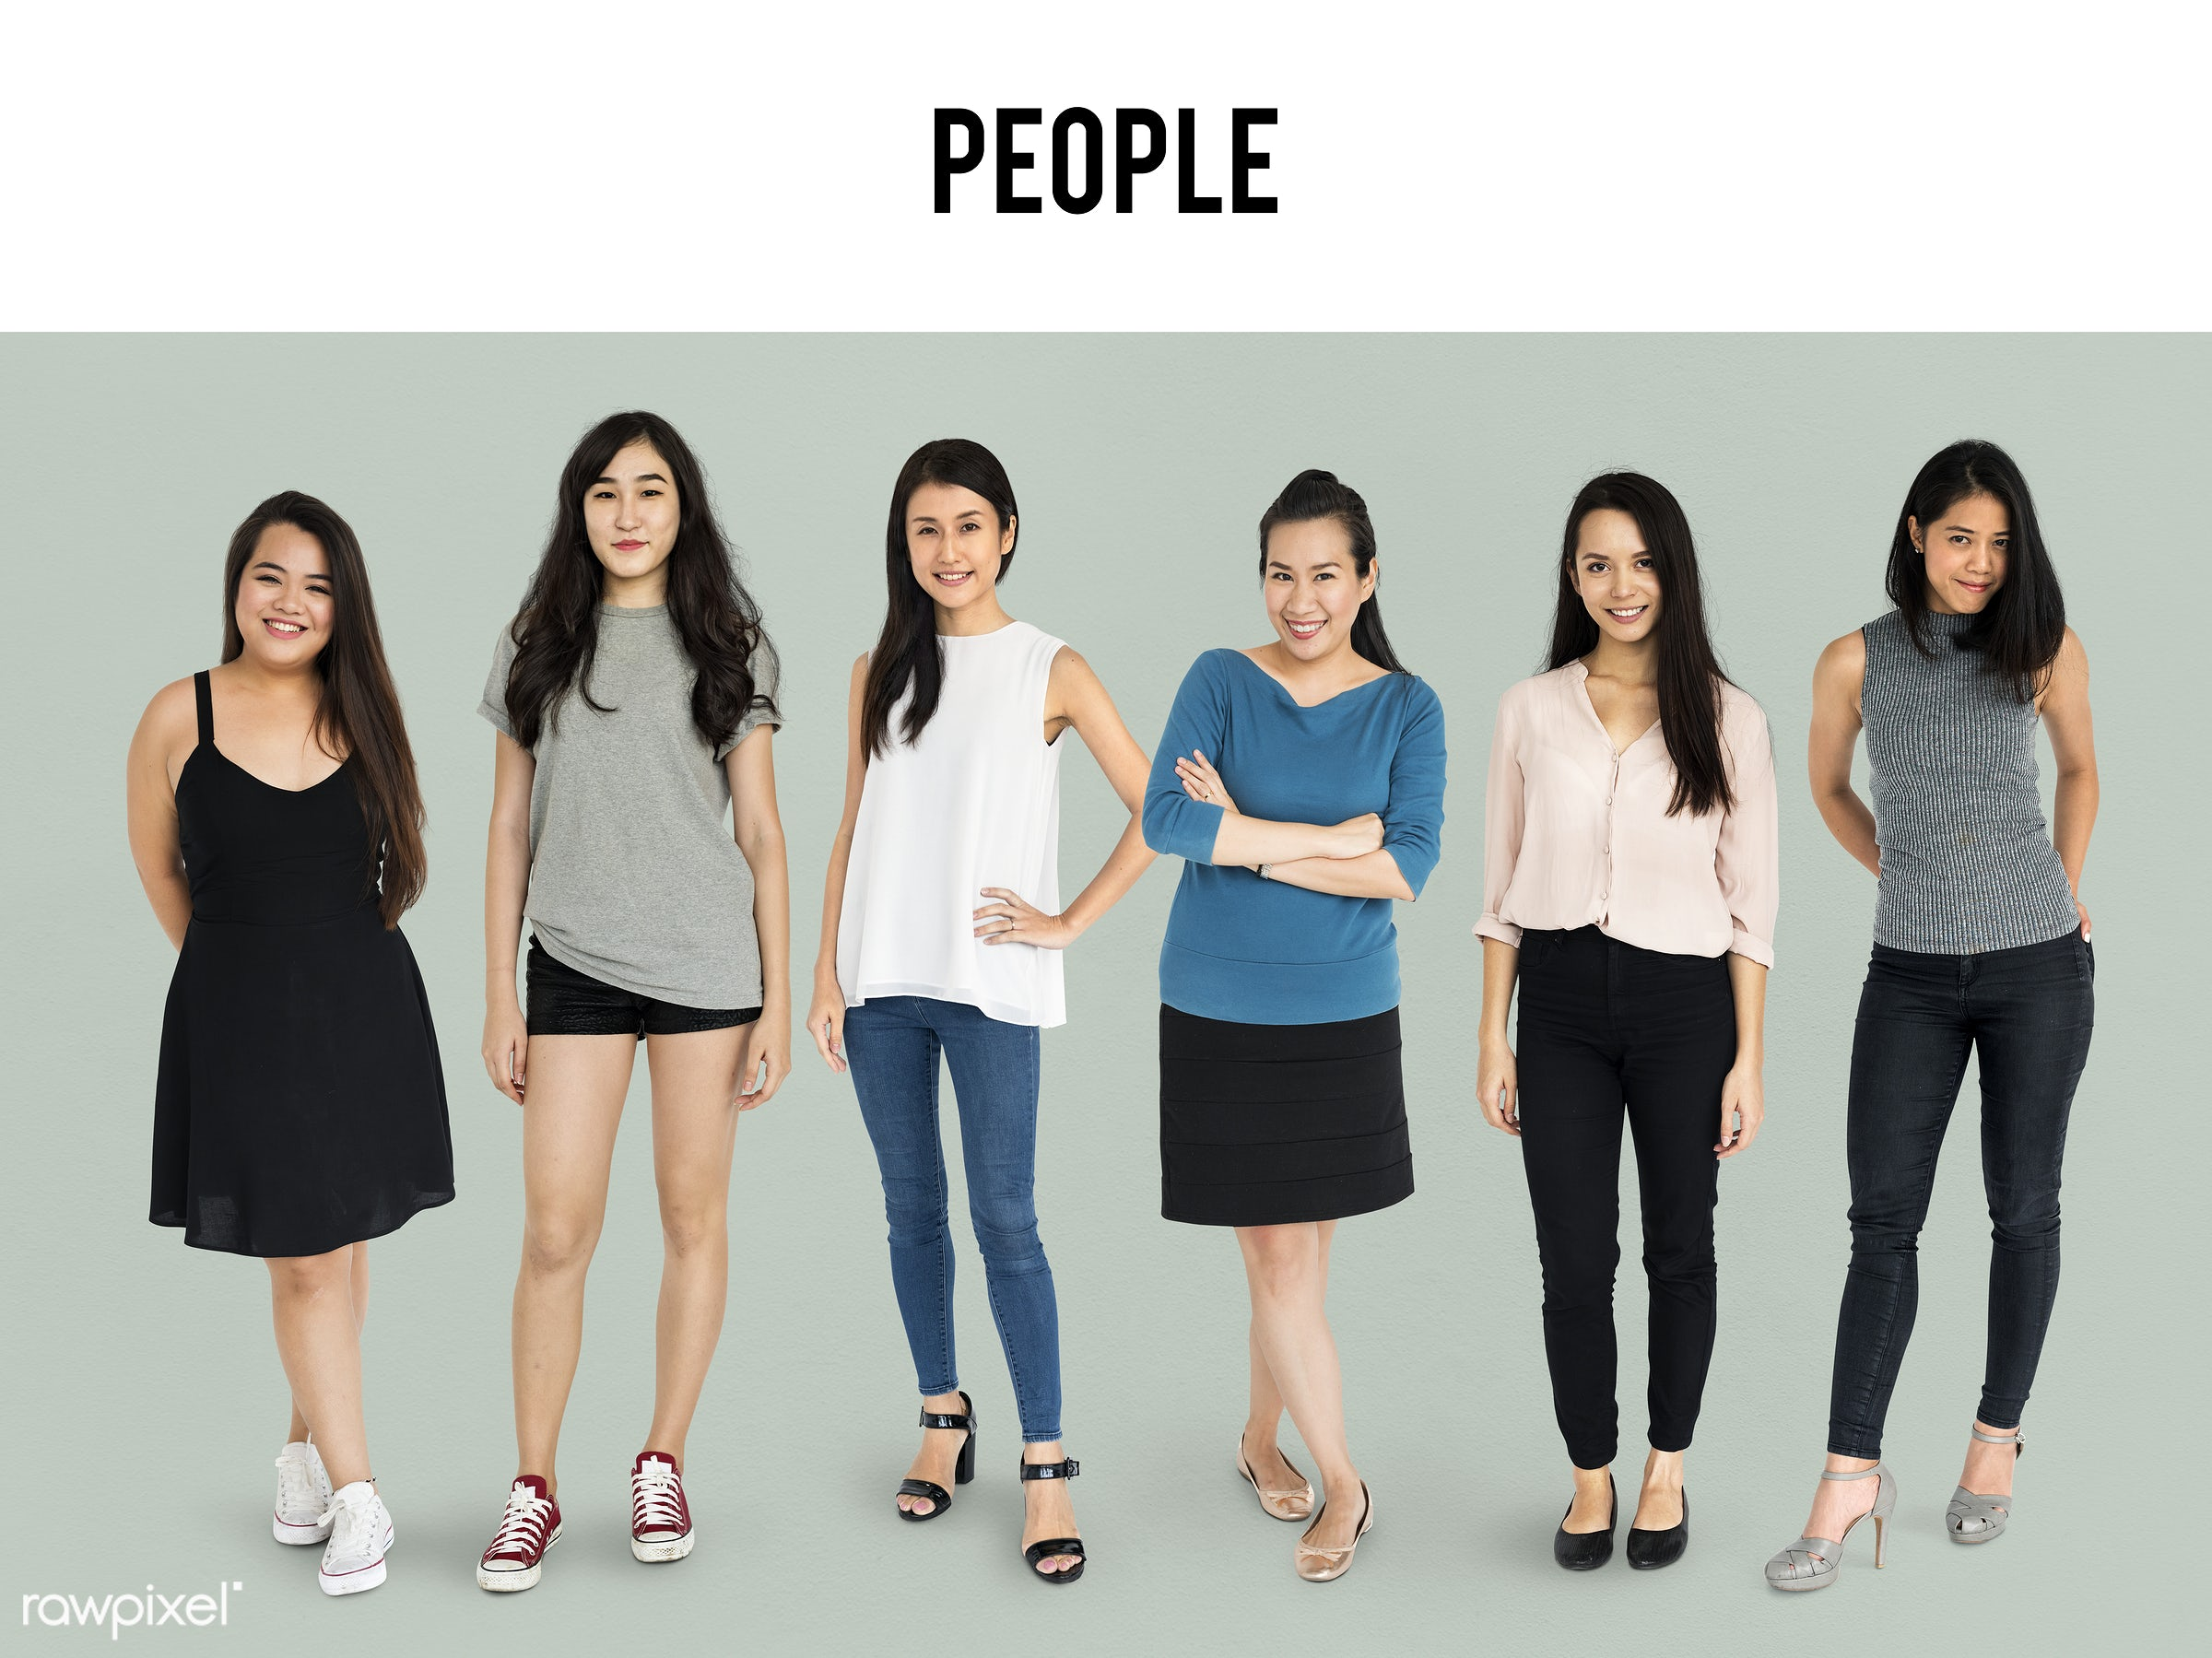 Diverse people set - studio, person, diverse, set, people, attraction, together, asian, life, black hair, woman, attractive...